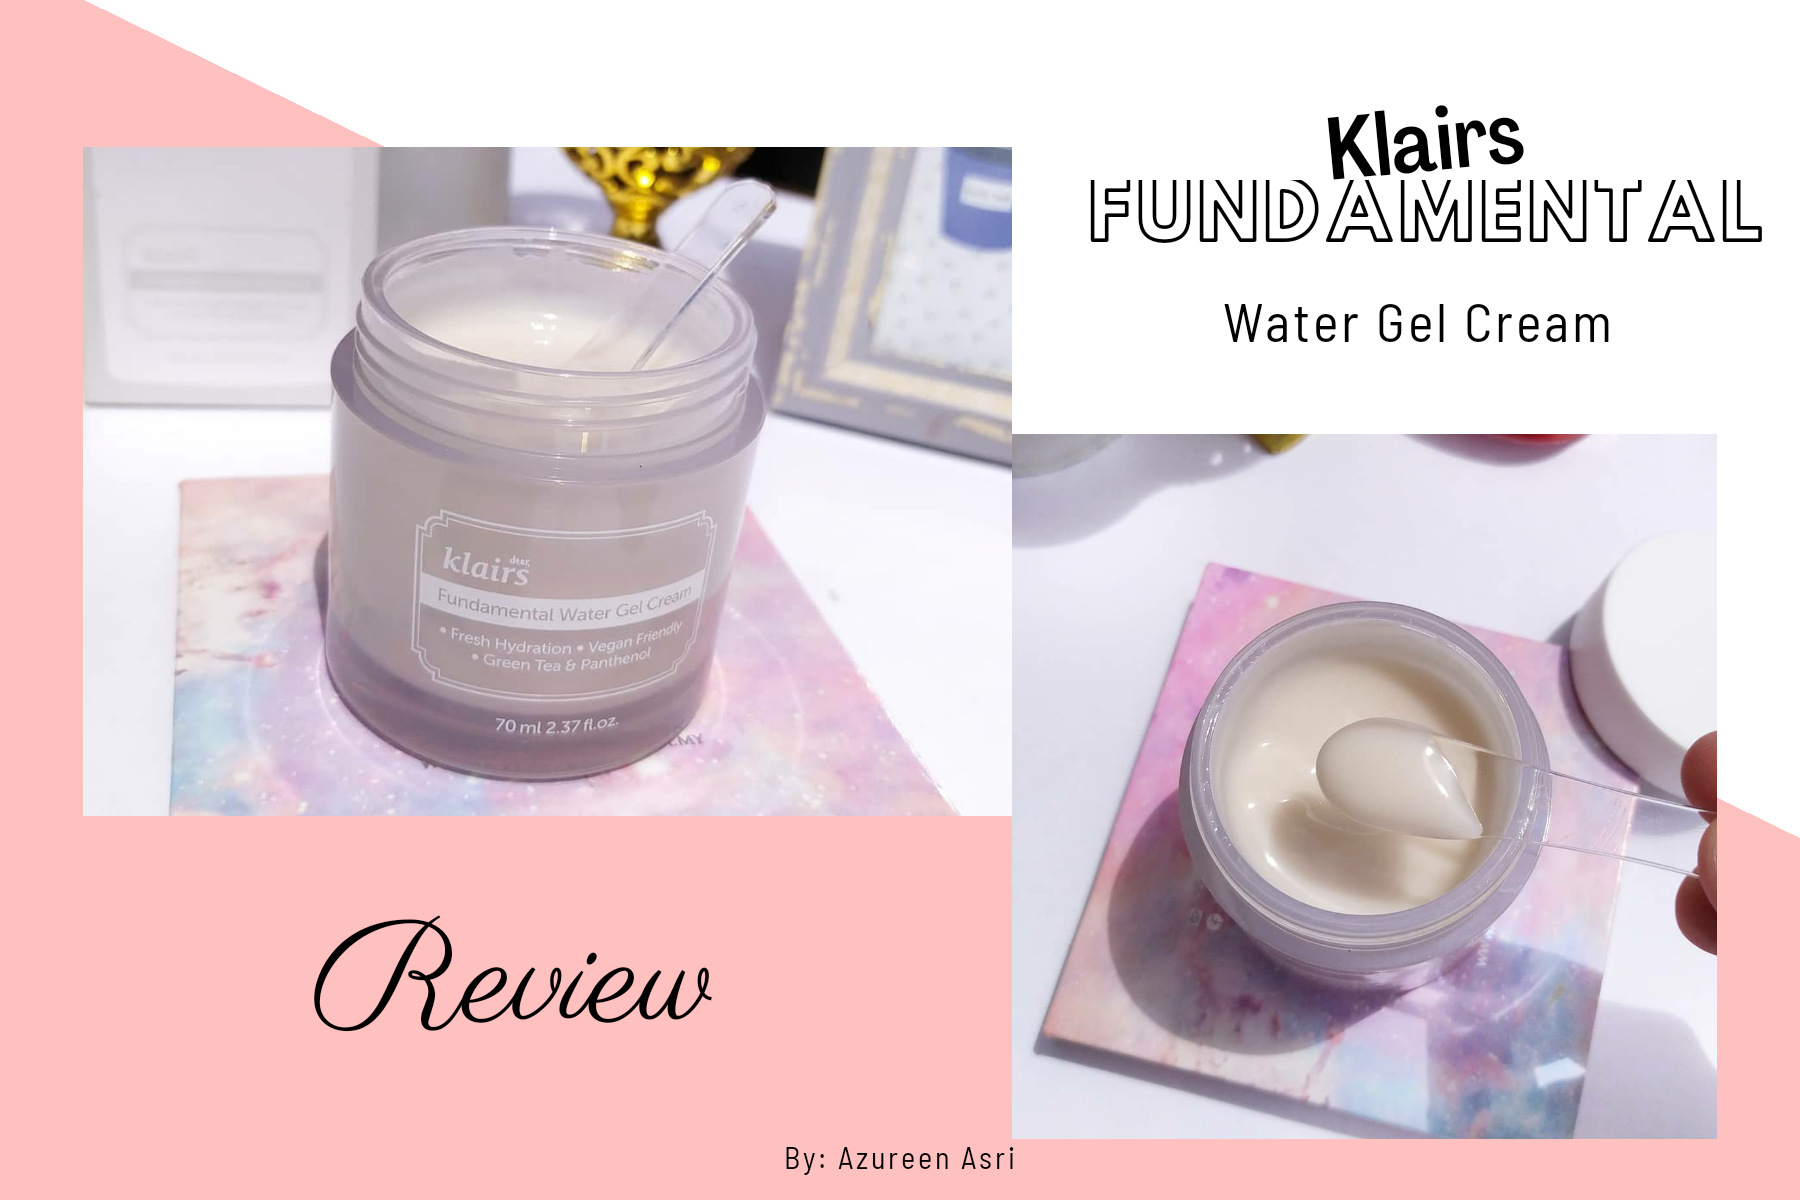 Smooth and Soft, Hydrated Skin with Klairs Fundamental Water Gel Cream